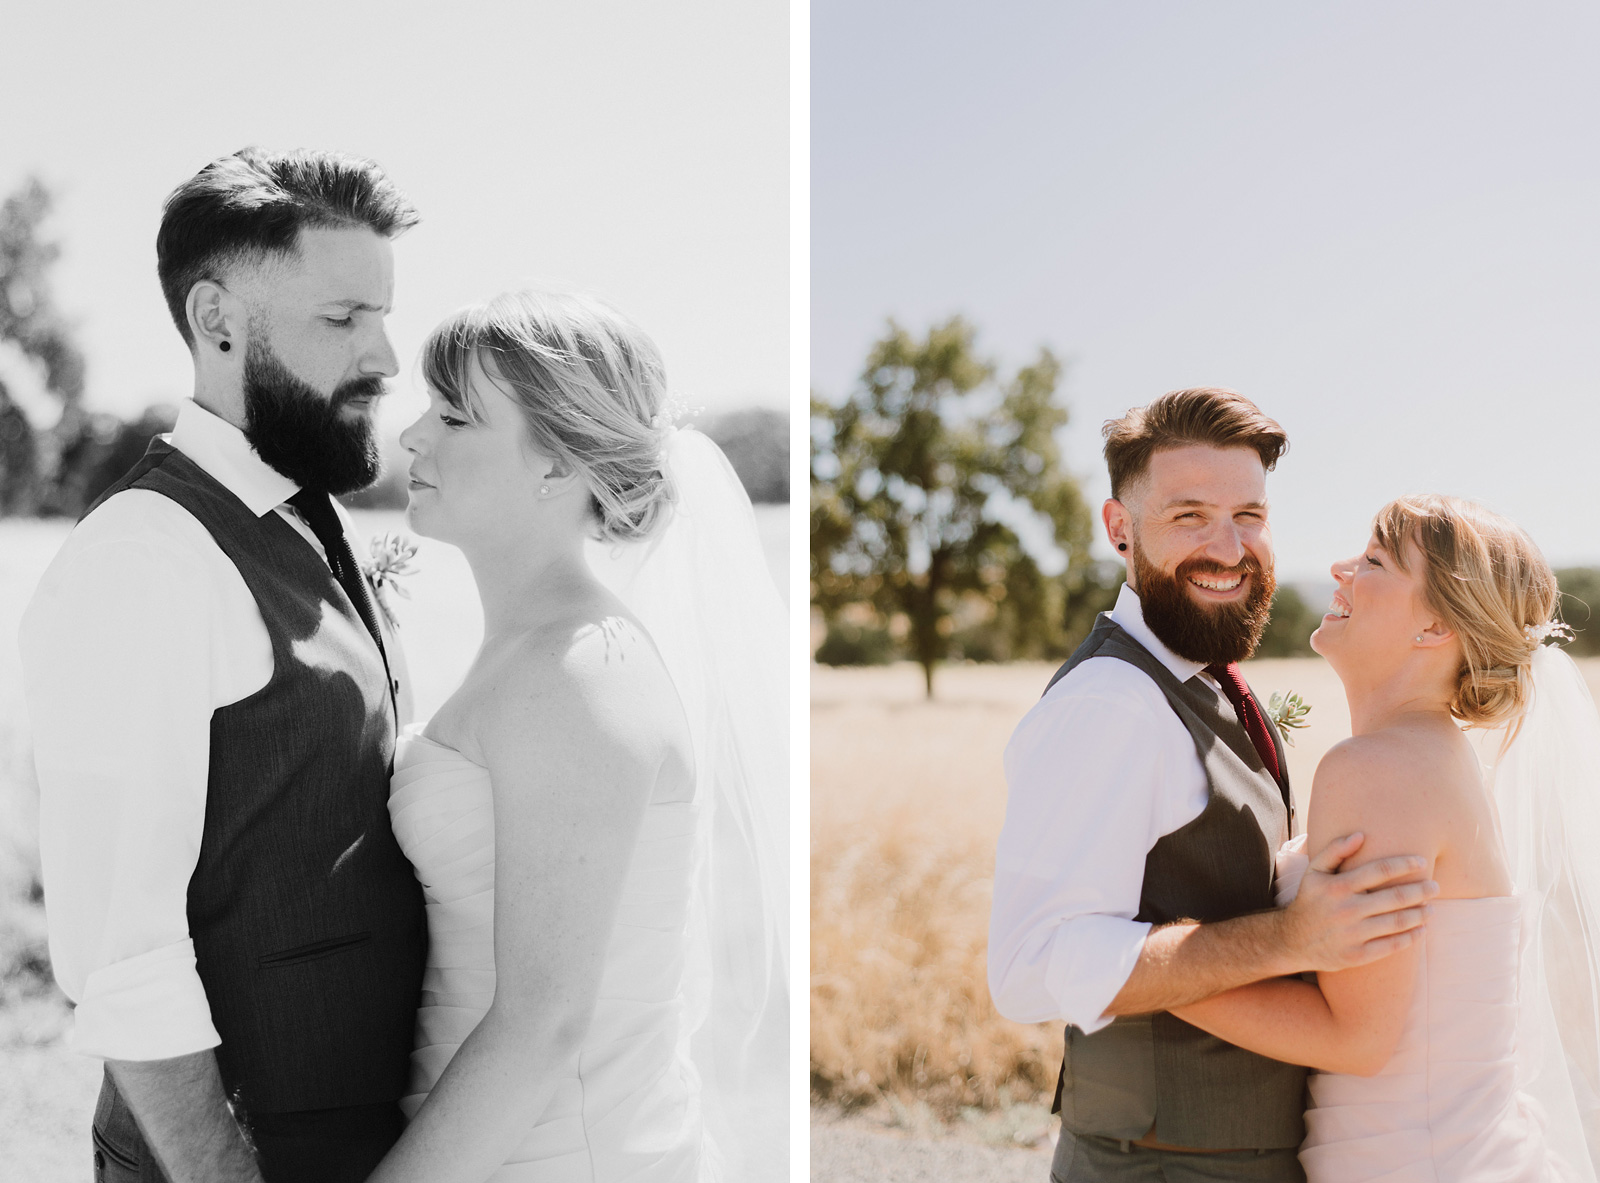 Portraits of Bride and Groom in Upper Bidwell Park | Backyard Chico California Wedding